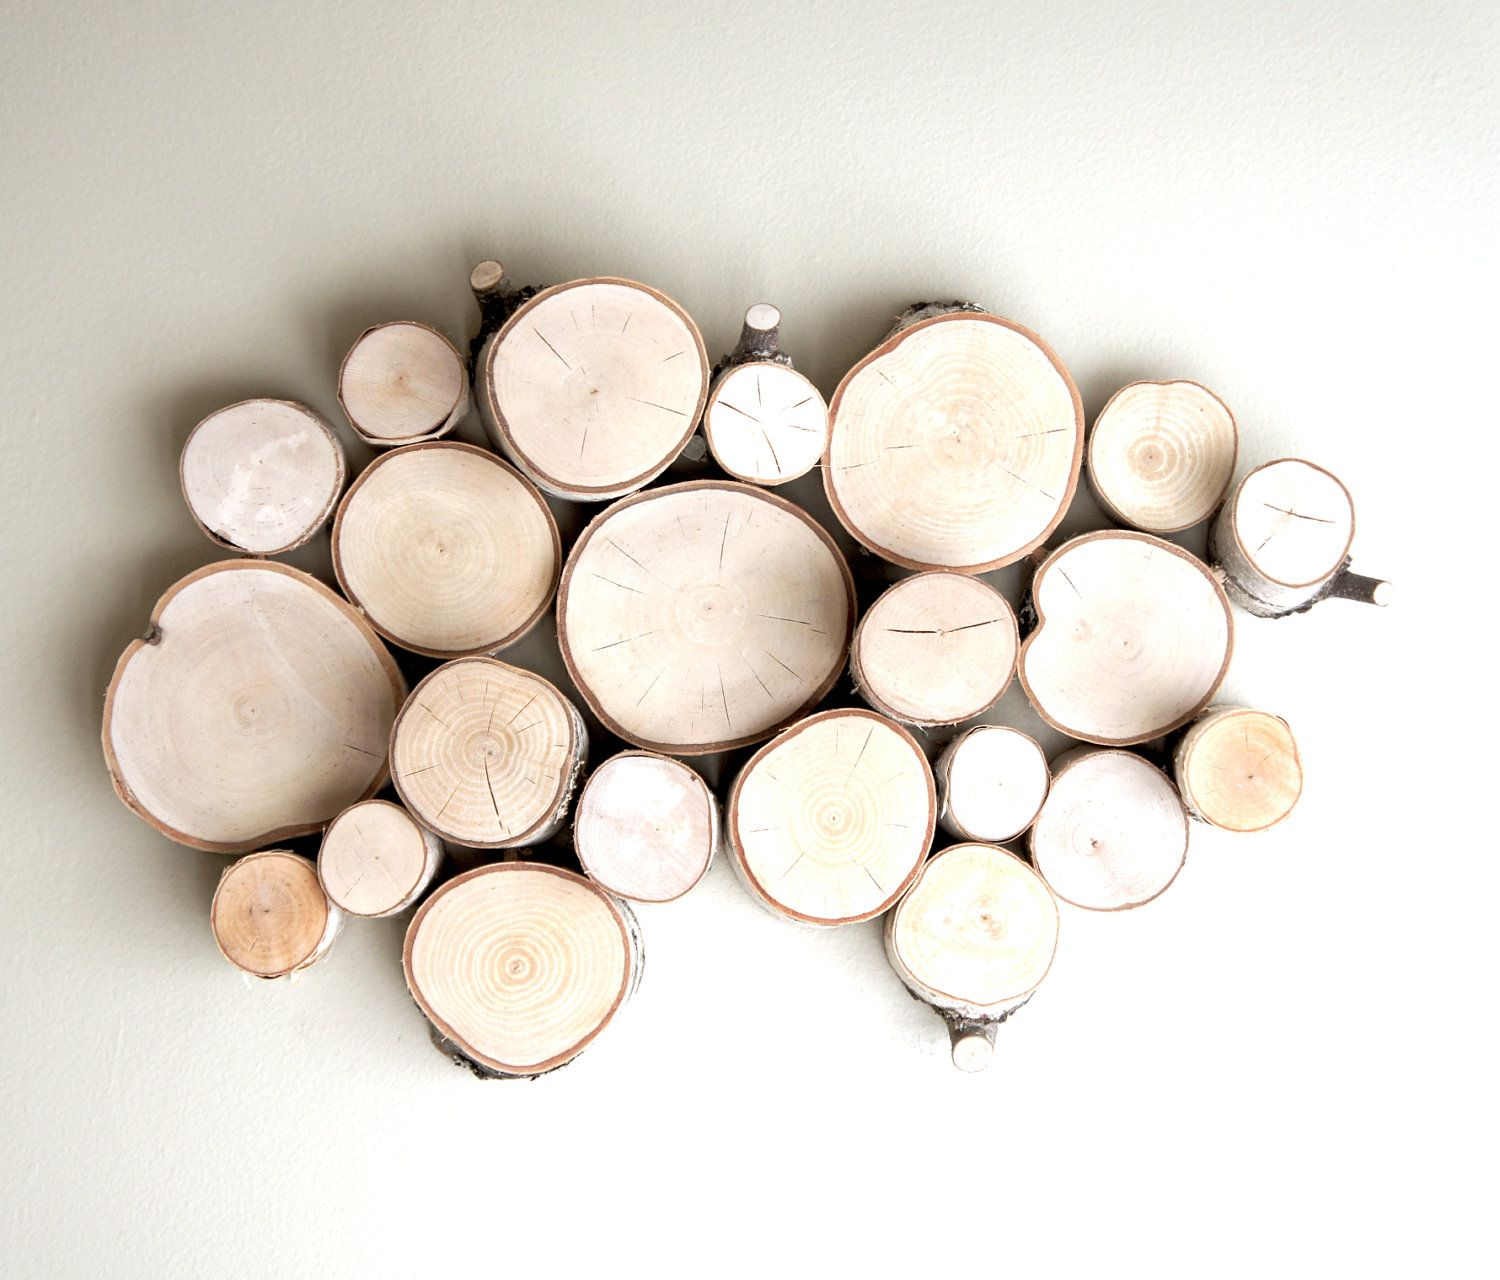 Natural White Birch Forest Topography Wall Sculpture Wood Art Wood Slices Wood Wall Decor Modern Rustic Art Wall Hanging White Birch Trees Wood Wall Decor Wood Wall Art